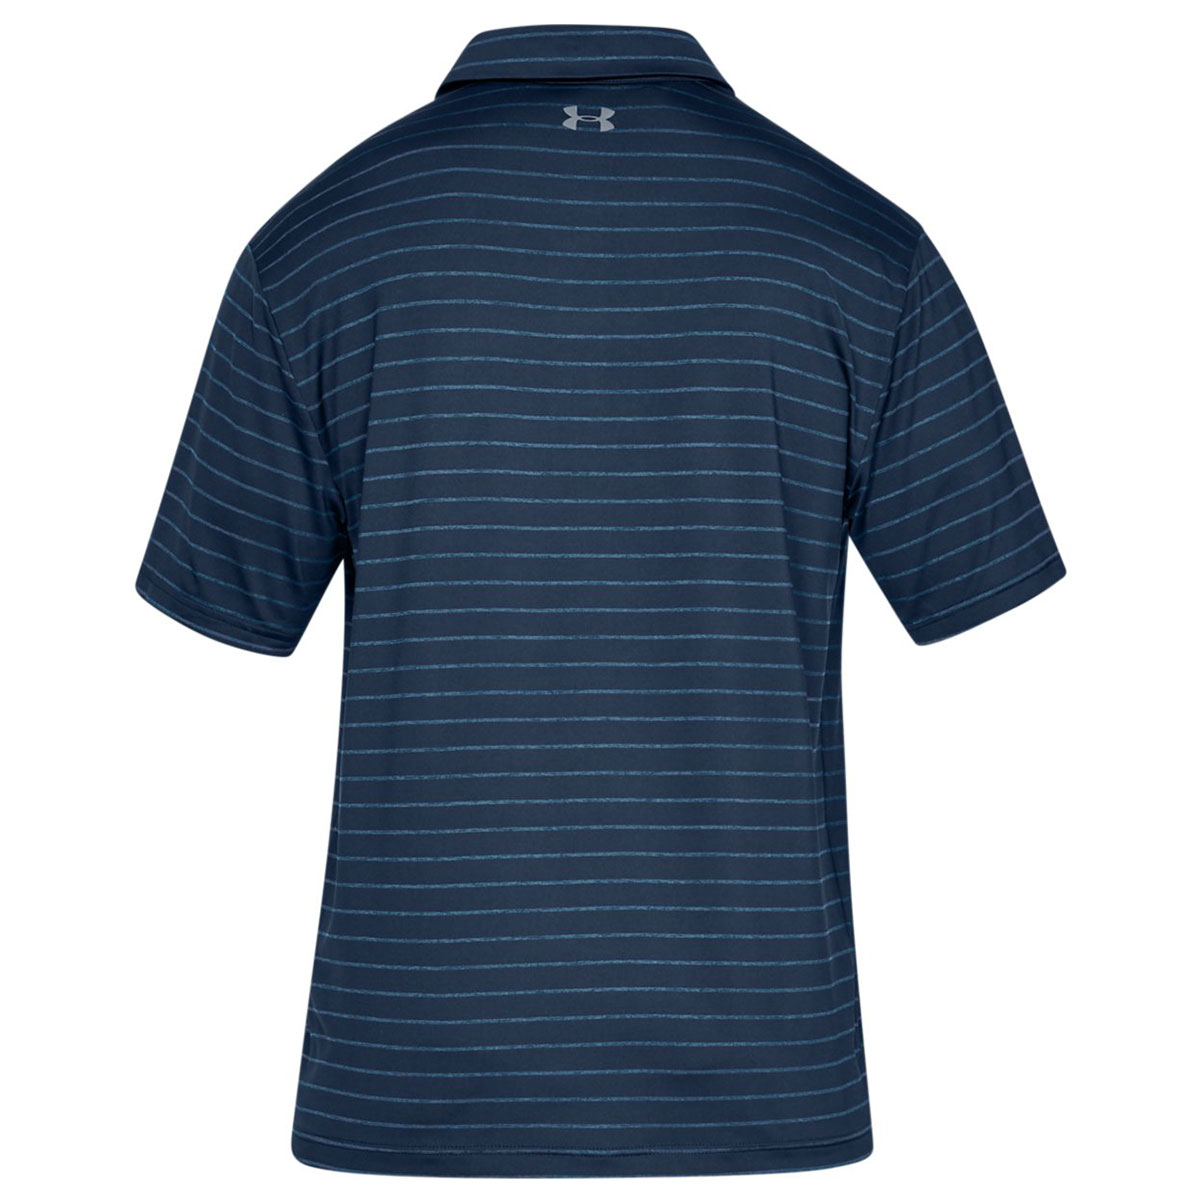 Under-Armour-Mens-2019-Playoff-Polo-2-0-Breathable-Light-Stretch-Polo-Shirt thumbnail 5